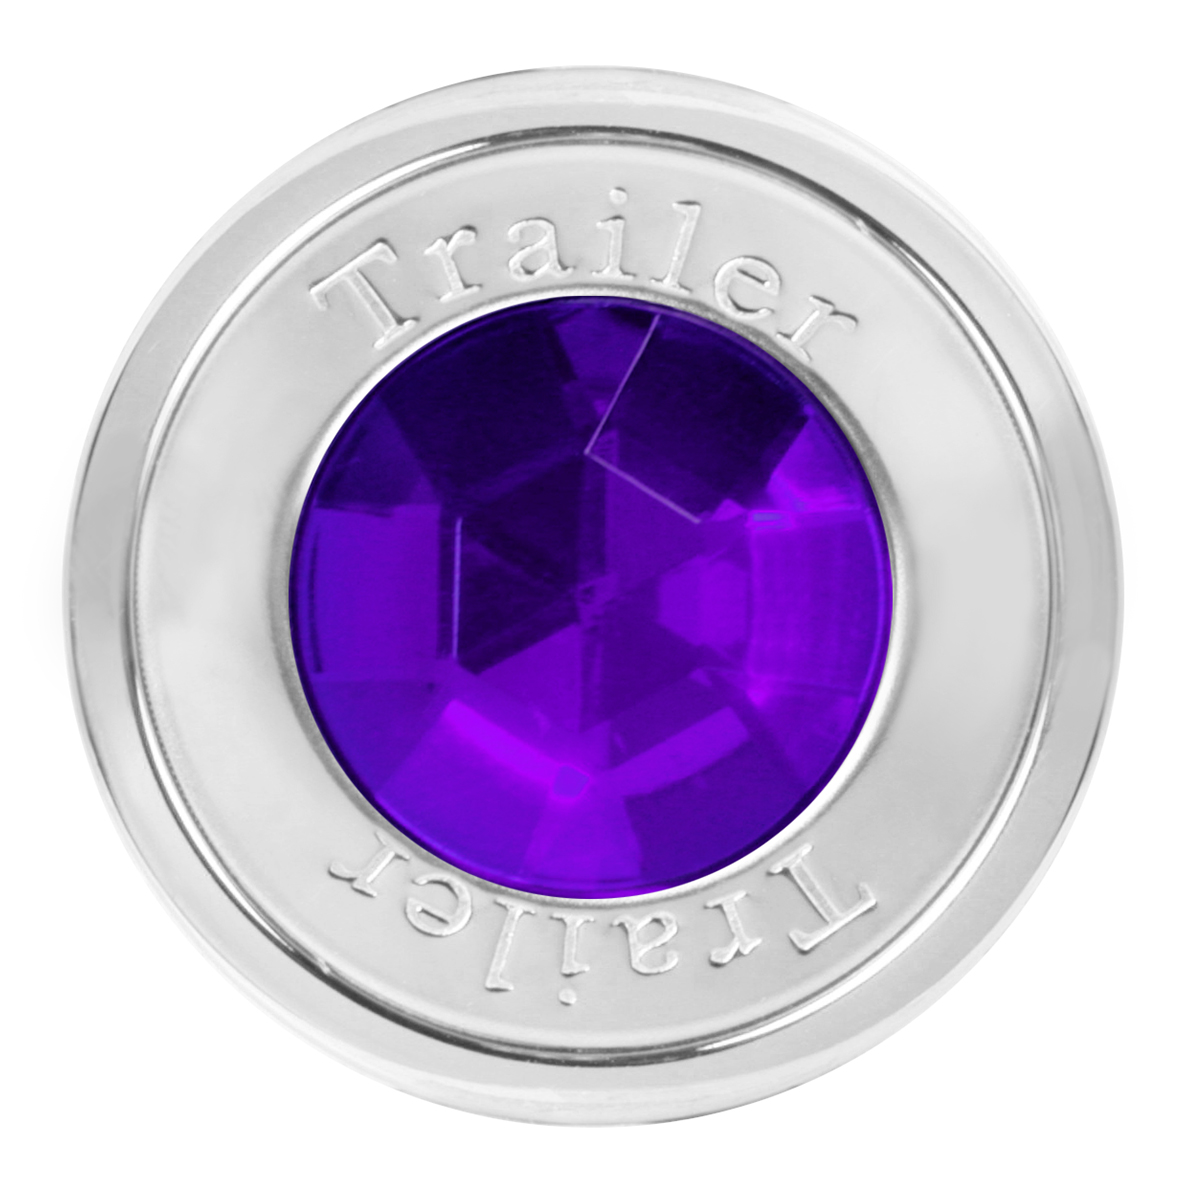 95824 Trailer Air Control Knob w/ Purple Crystal